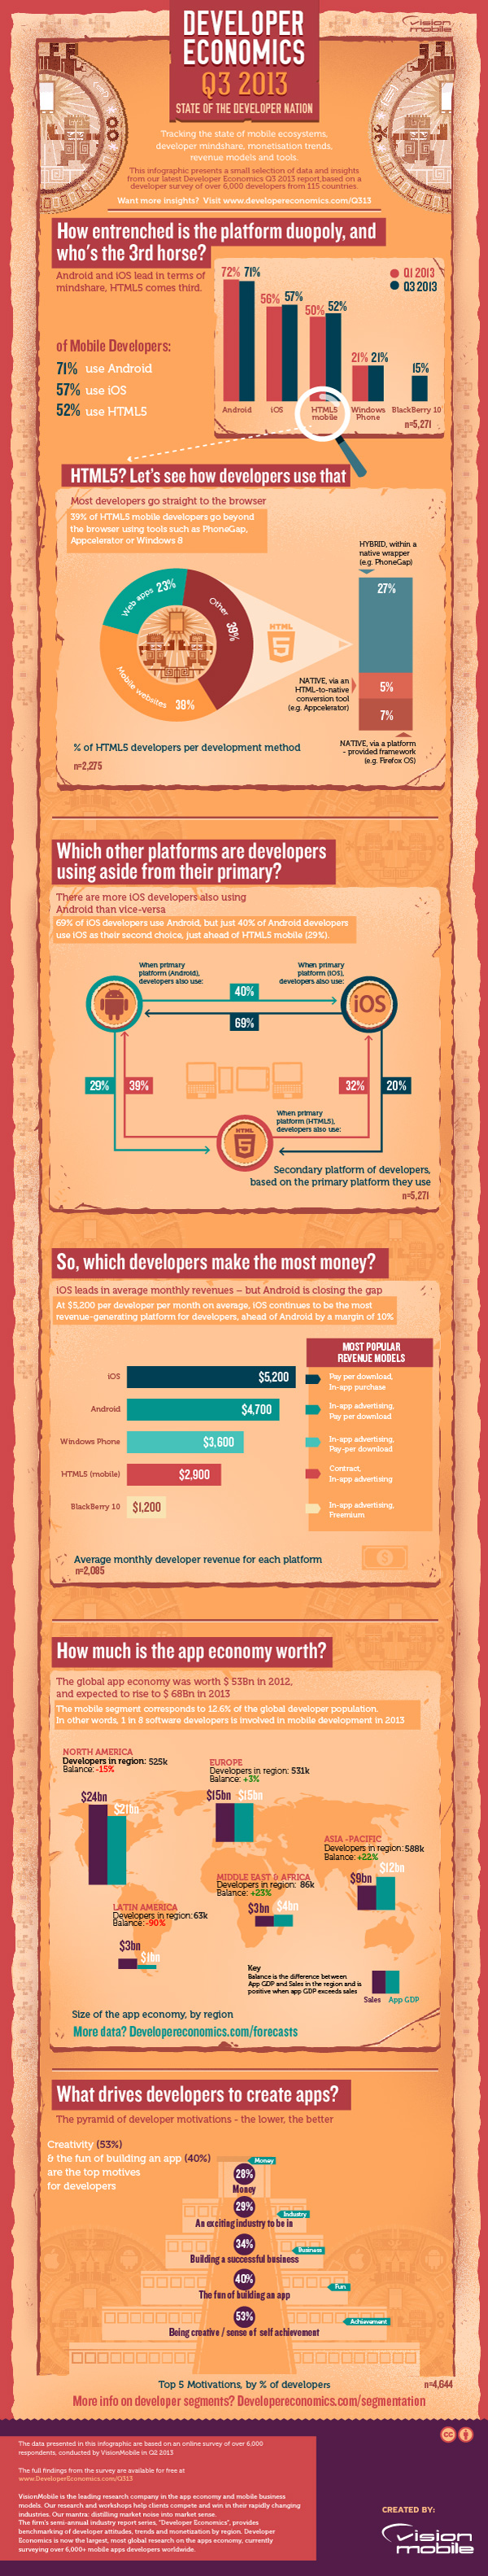 Developer economics Q3 2013